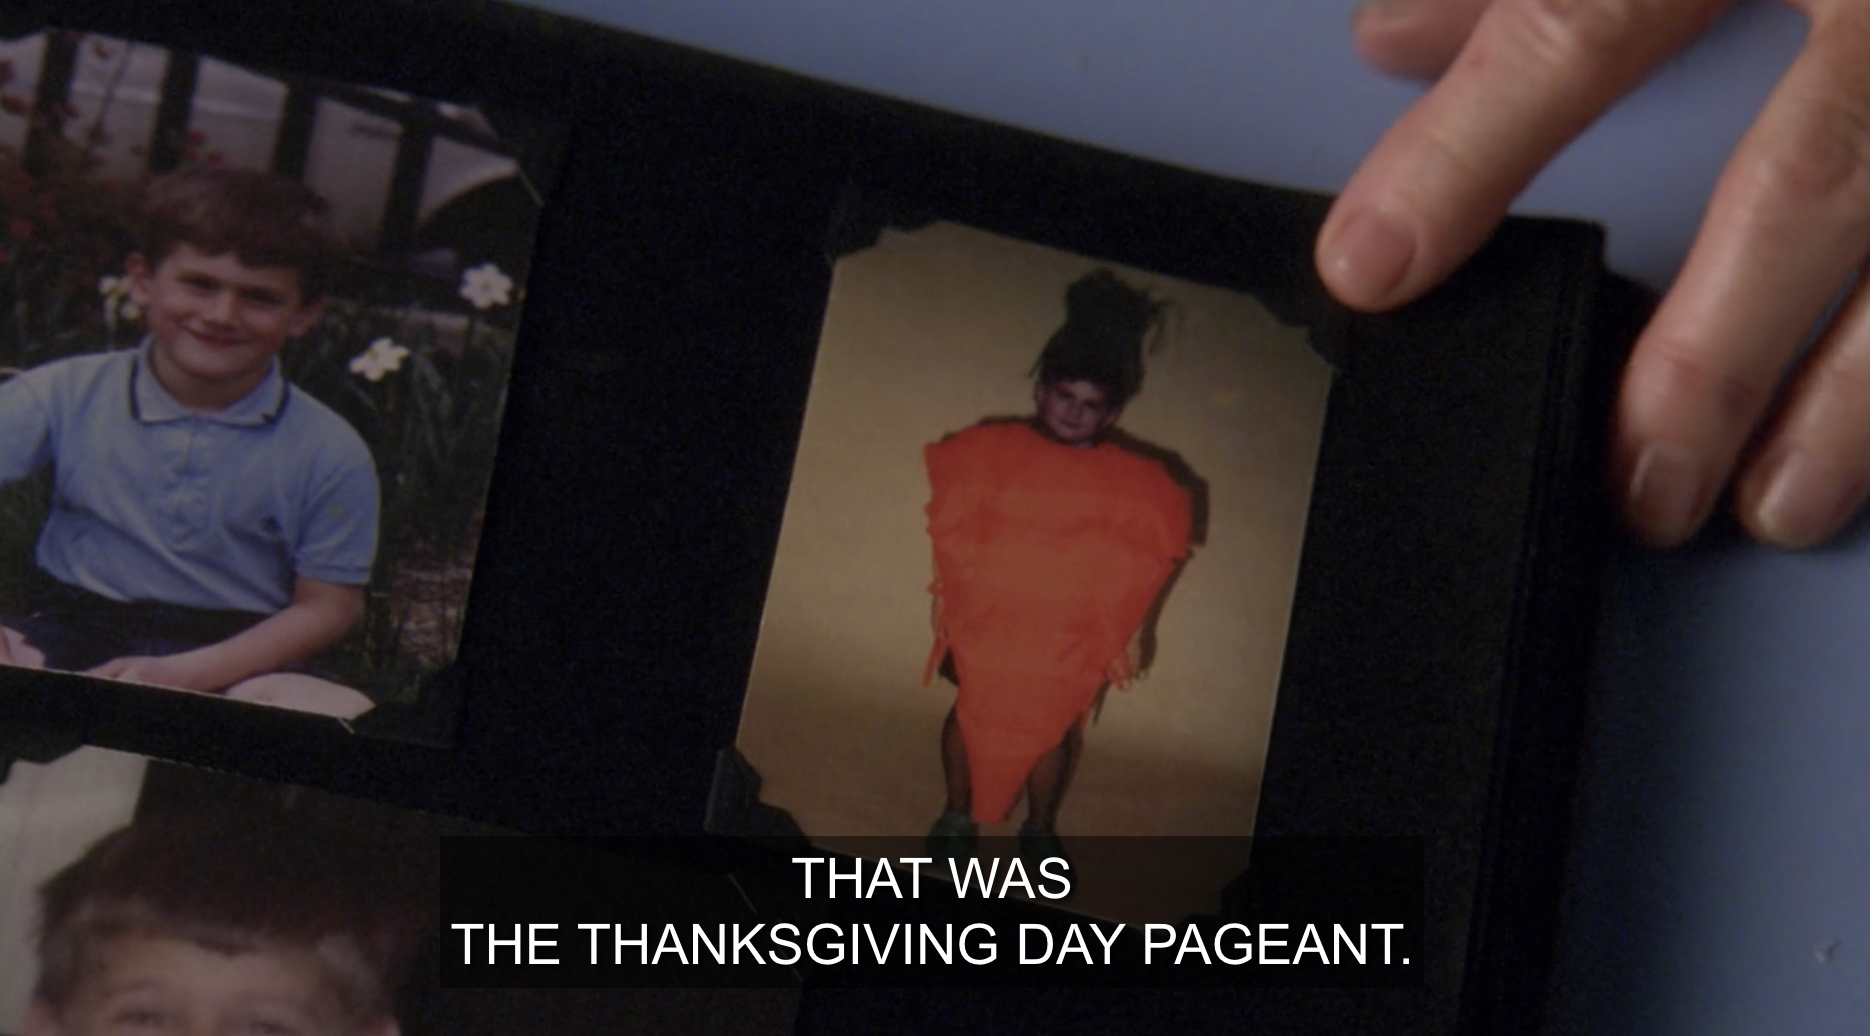 A childhood photo of Stabler dressed as a carrot